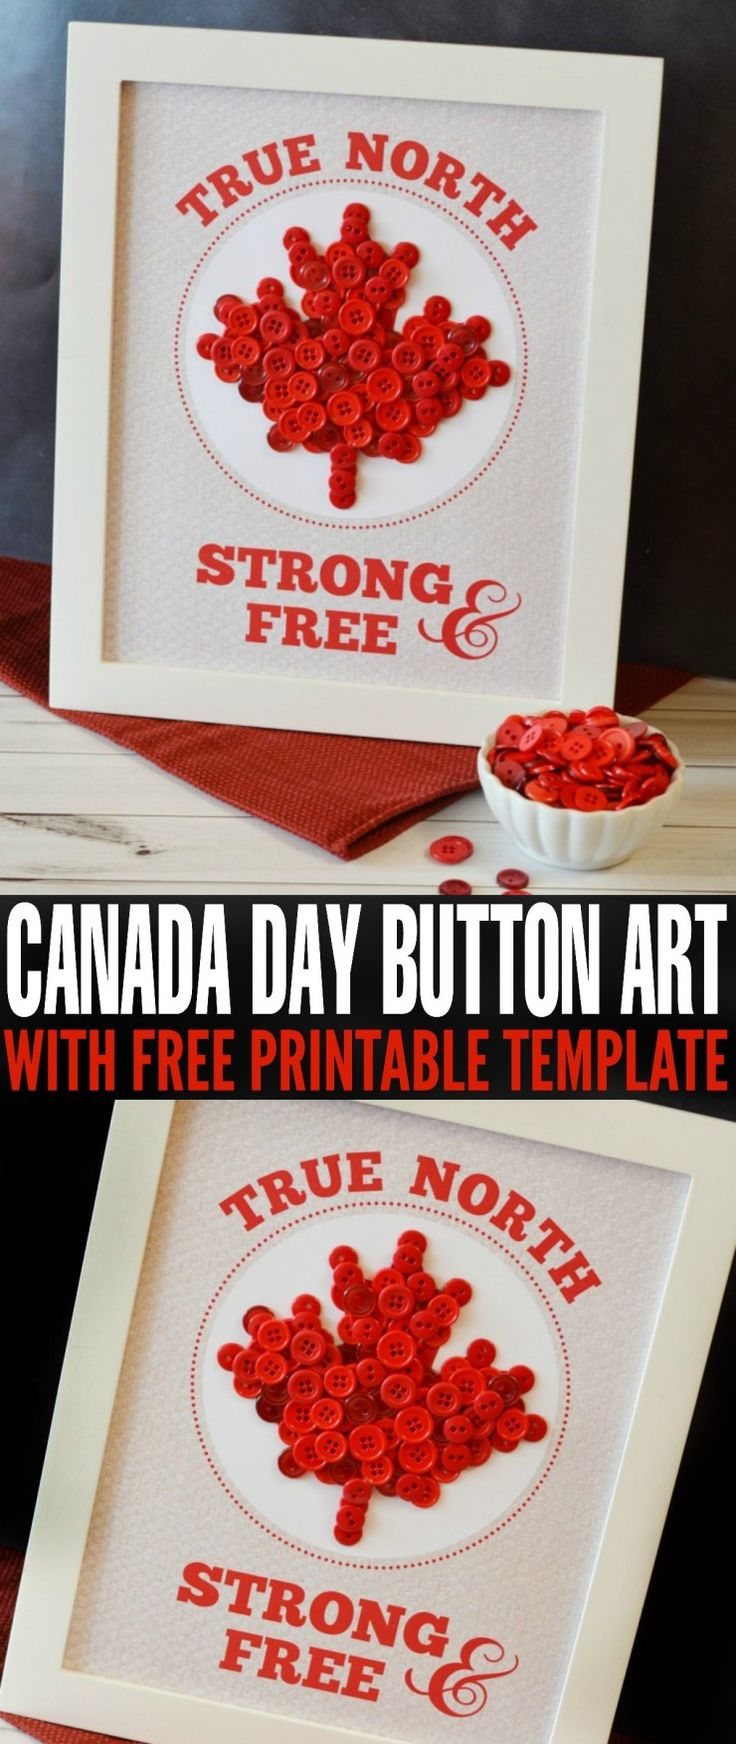 best 25 canada day crafts ideas that you will like on pinterest canada 150 years canada. Black Bedroom Furniture Sets. Home Design Ideas